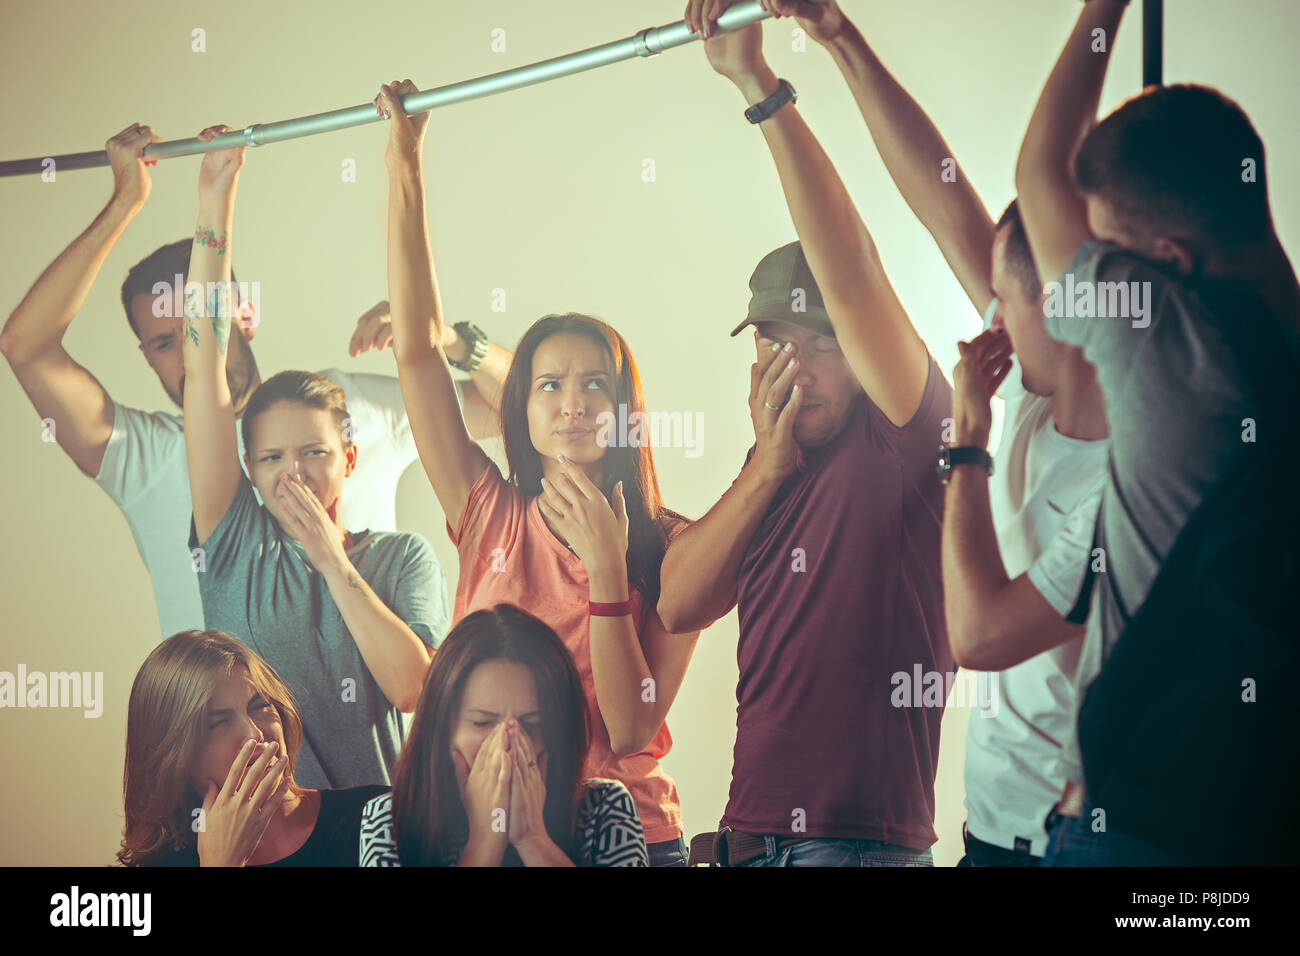 Sweaty armpits. Sweaty man. Bus. Public transport. The unhappy people near man - Stock Image